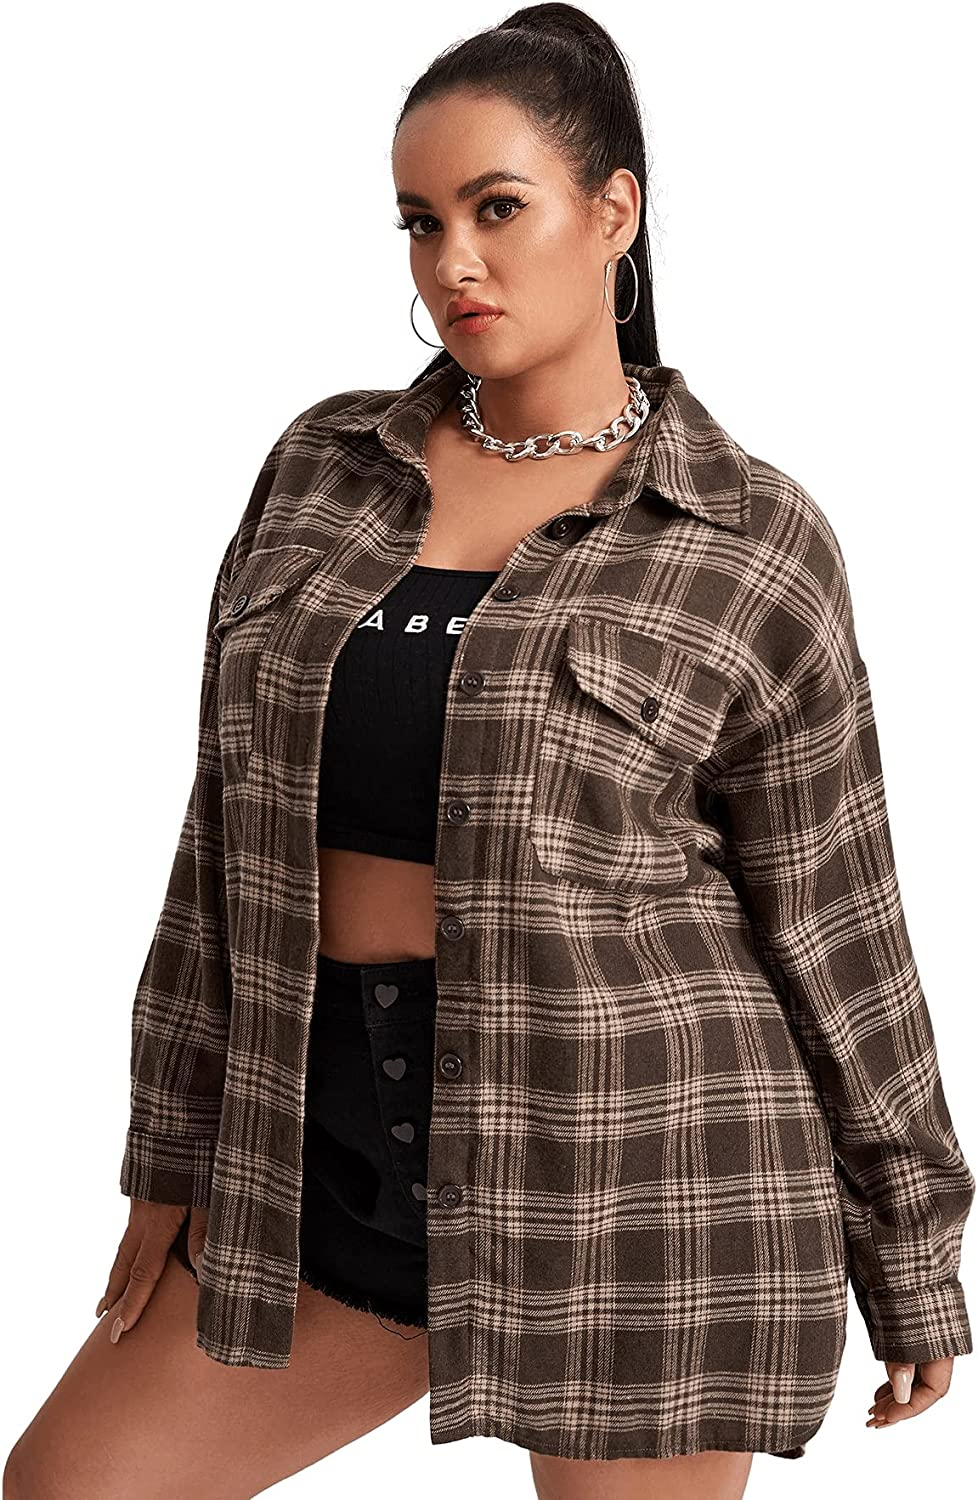 Romwe Women's Plus Size Plaid Long Sleeve Button Up Shirts Collar Blouses Tops